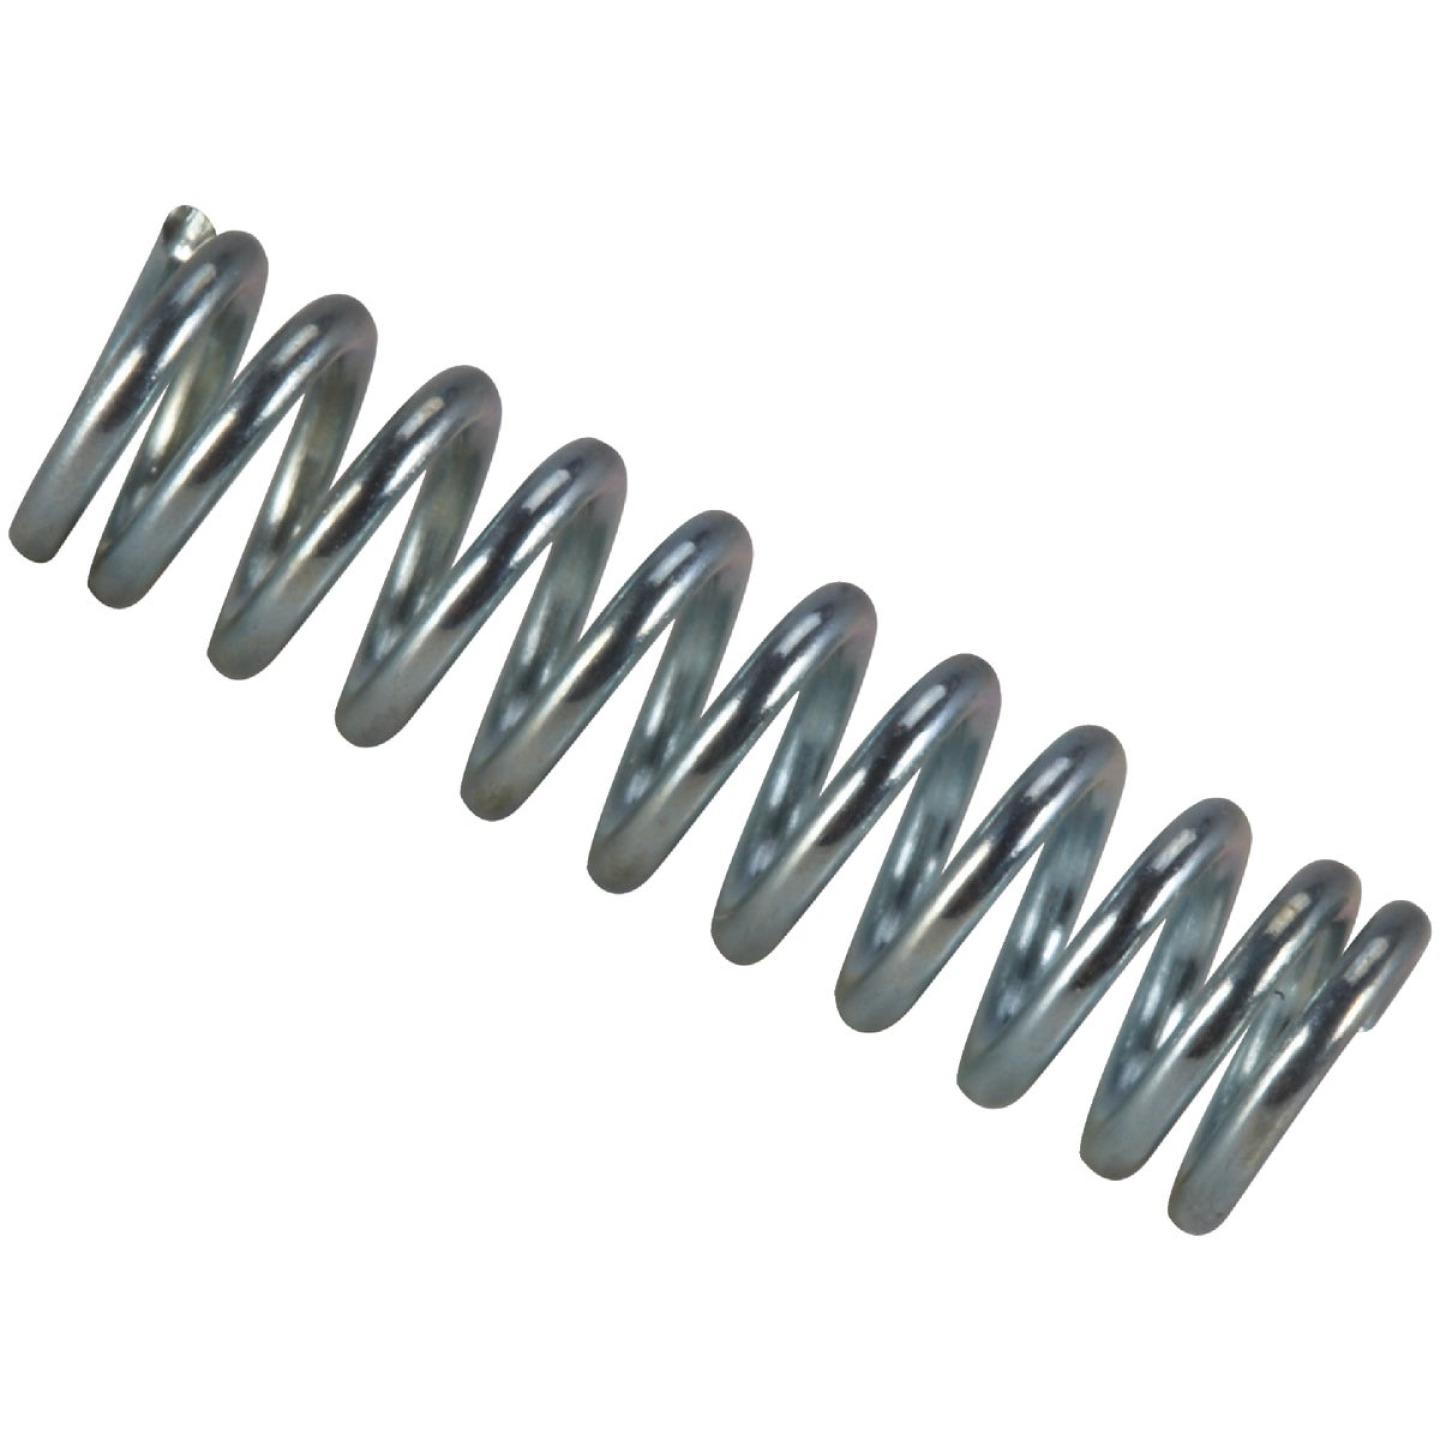 Century Spring 2-1/2 In. x 1-3/8 In. Compression Spring (1 Count) Image 1